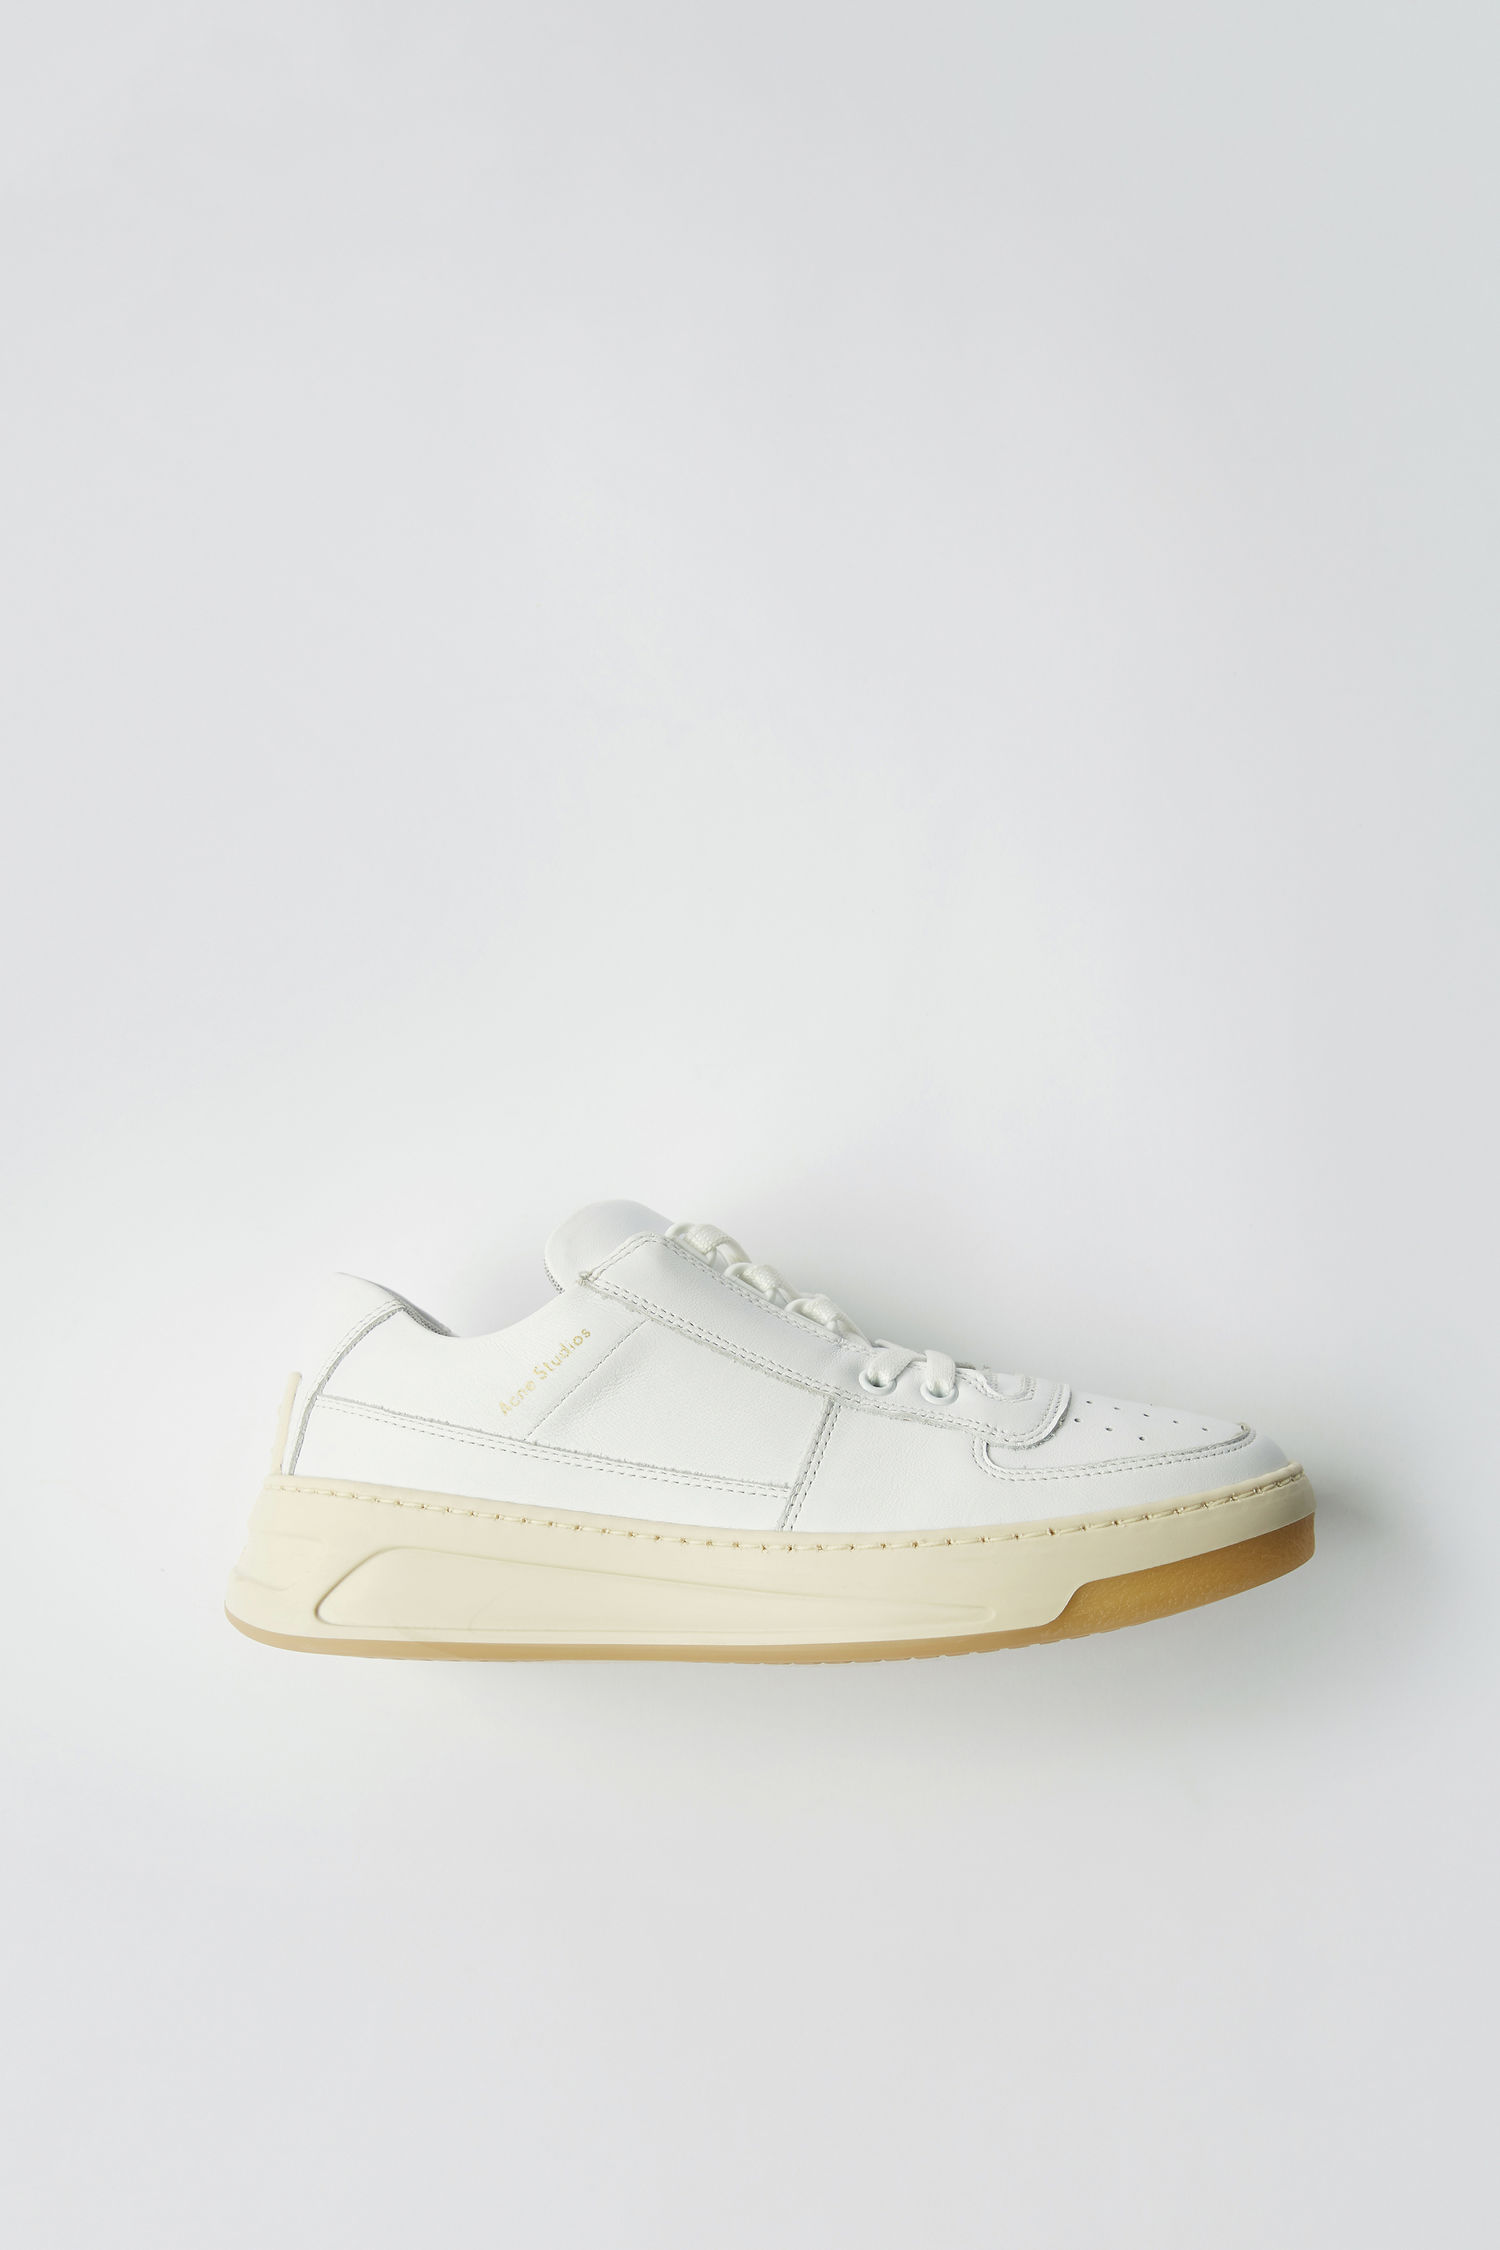 Acne Studios Perey Lace Up in white/white (€320)